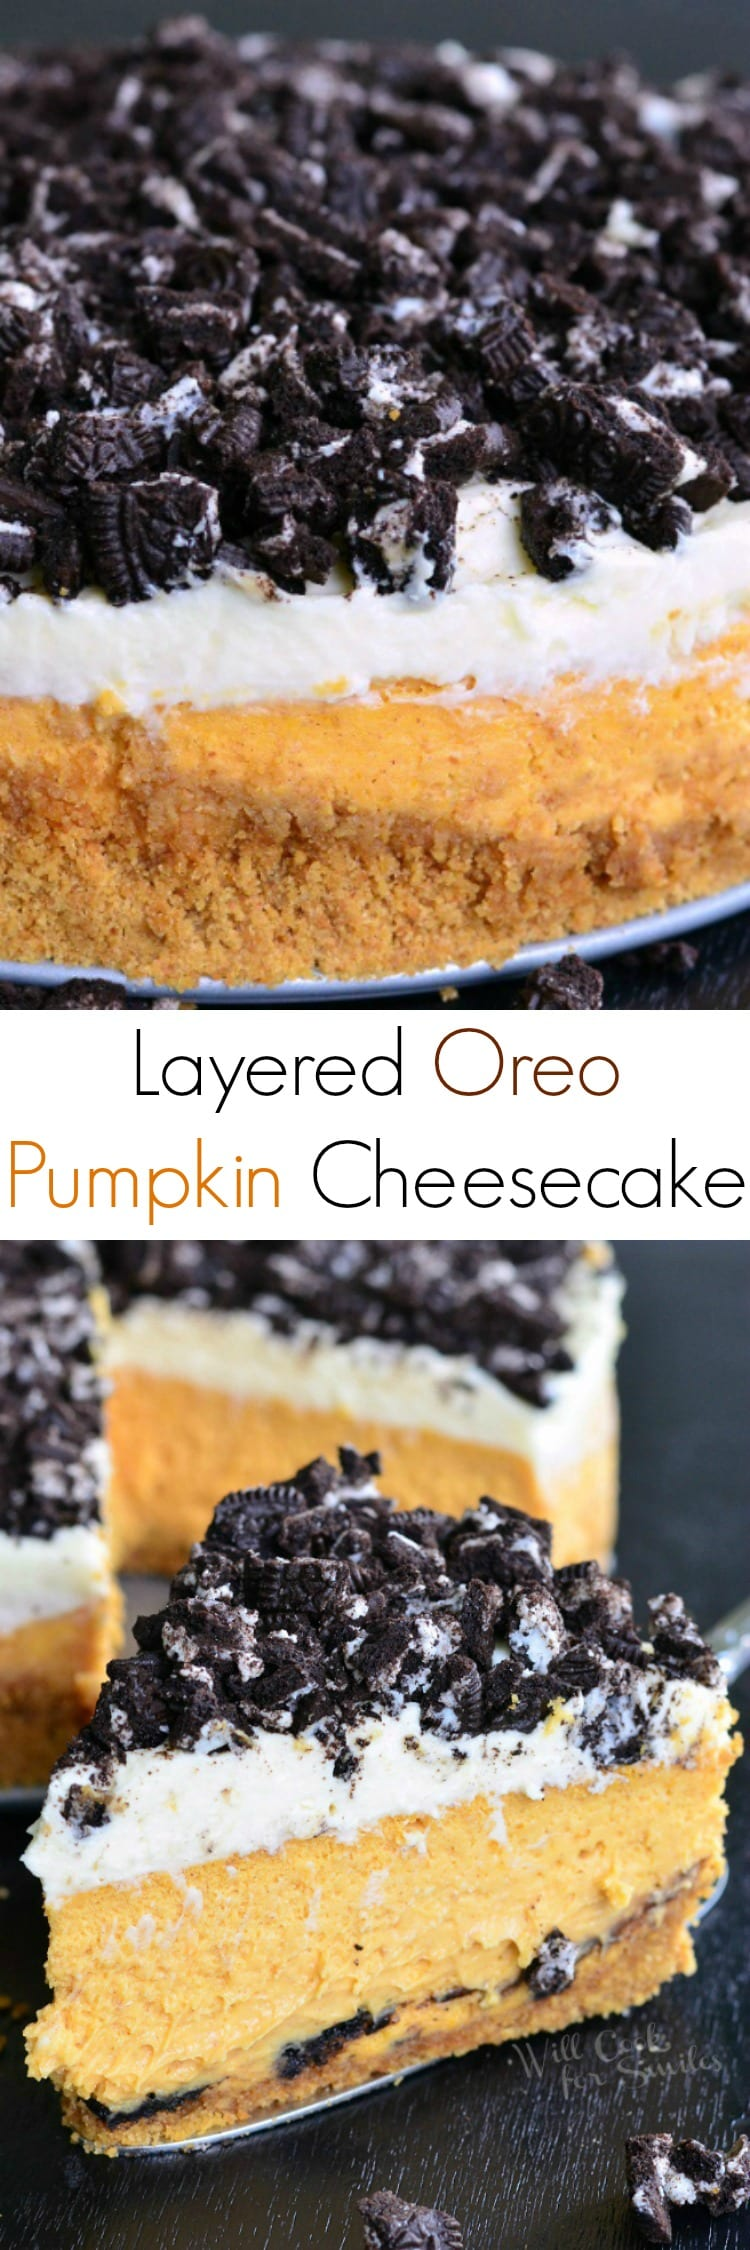 Layered Oreo Pumpkin Cheesecake. Layered Oreo Pumpkin Cheesecake. This is a fantastic cheesecake recipe that would make a perfect fall dessert. Layers of pumpkin cheesecake, crushed Oreo cookies, and spiced mascarpone frosting.